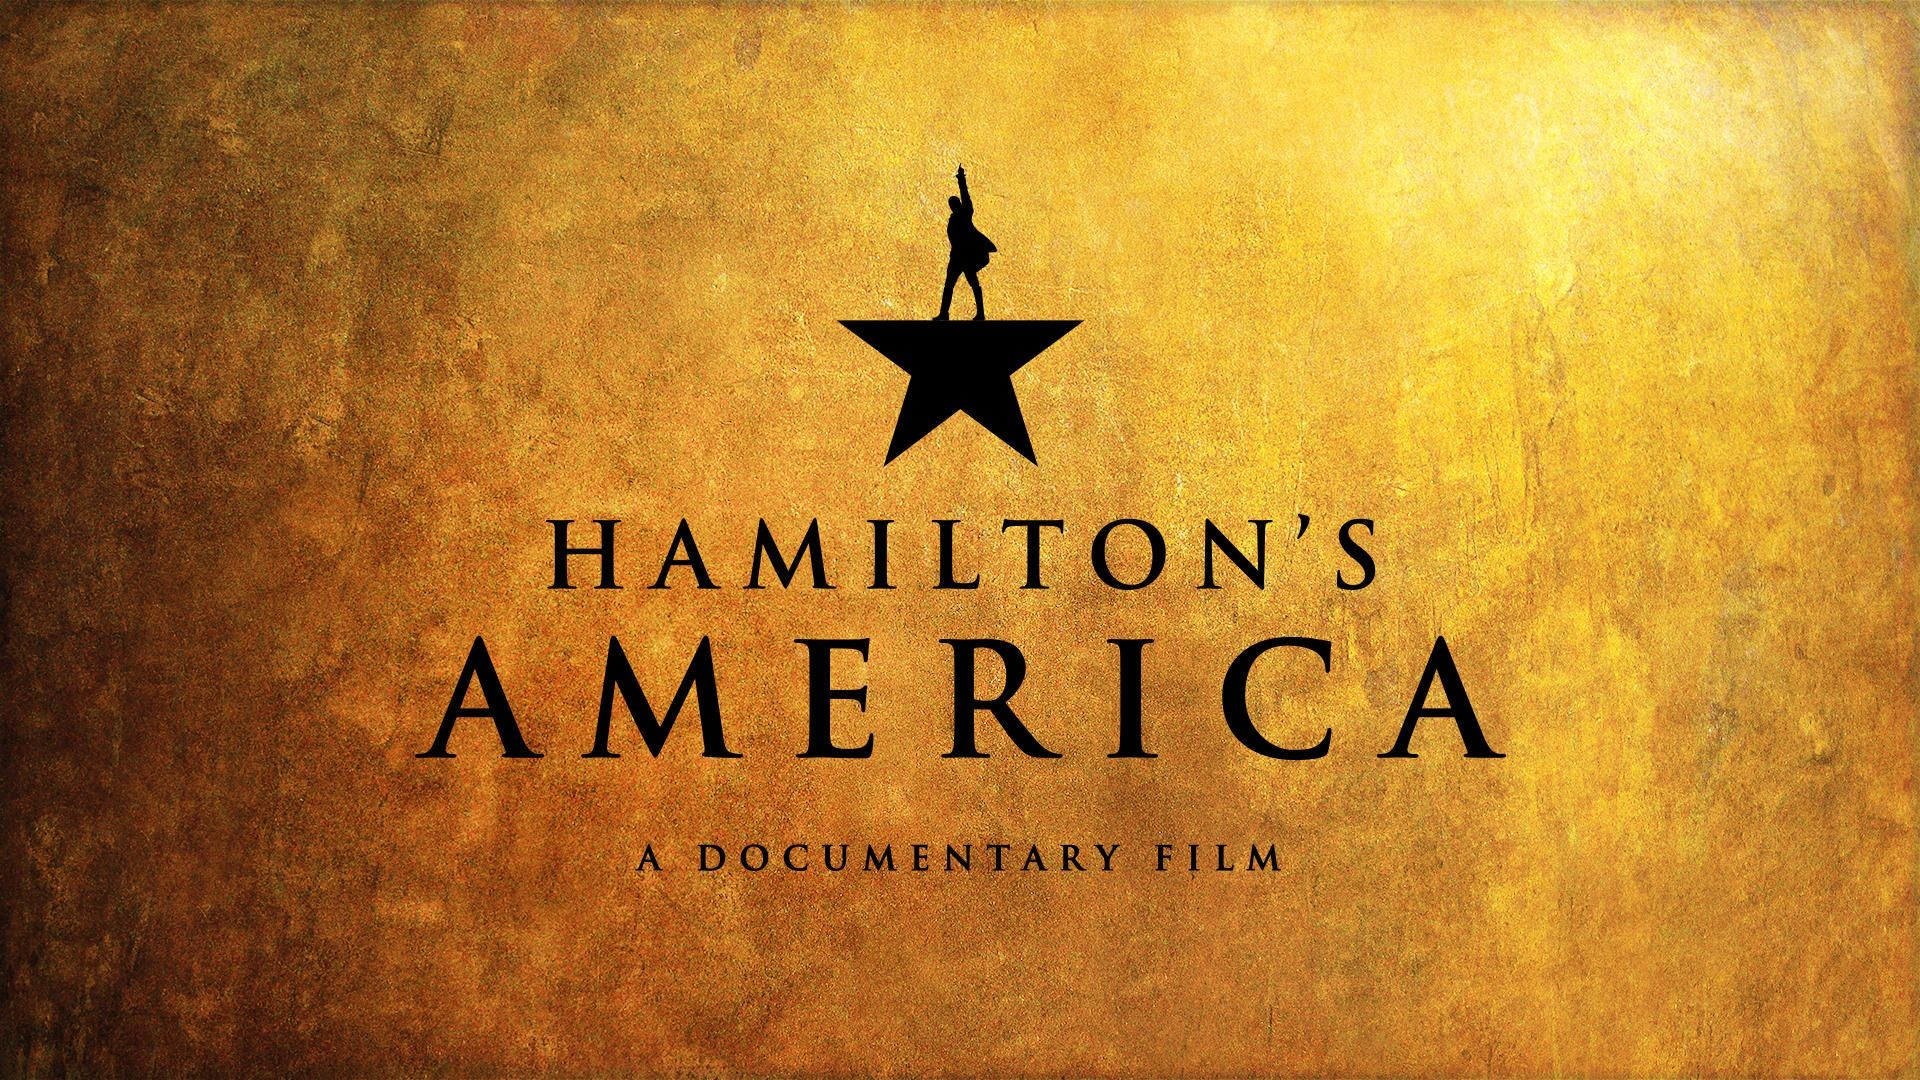 Res: 1920x1080, Alexander Hamilton Musical Logo Image Gallery - HCPR